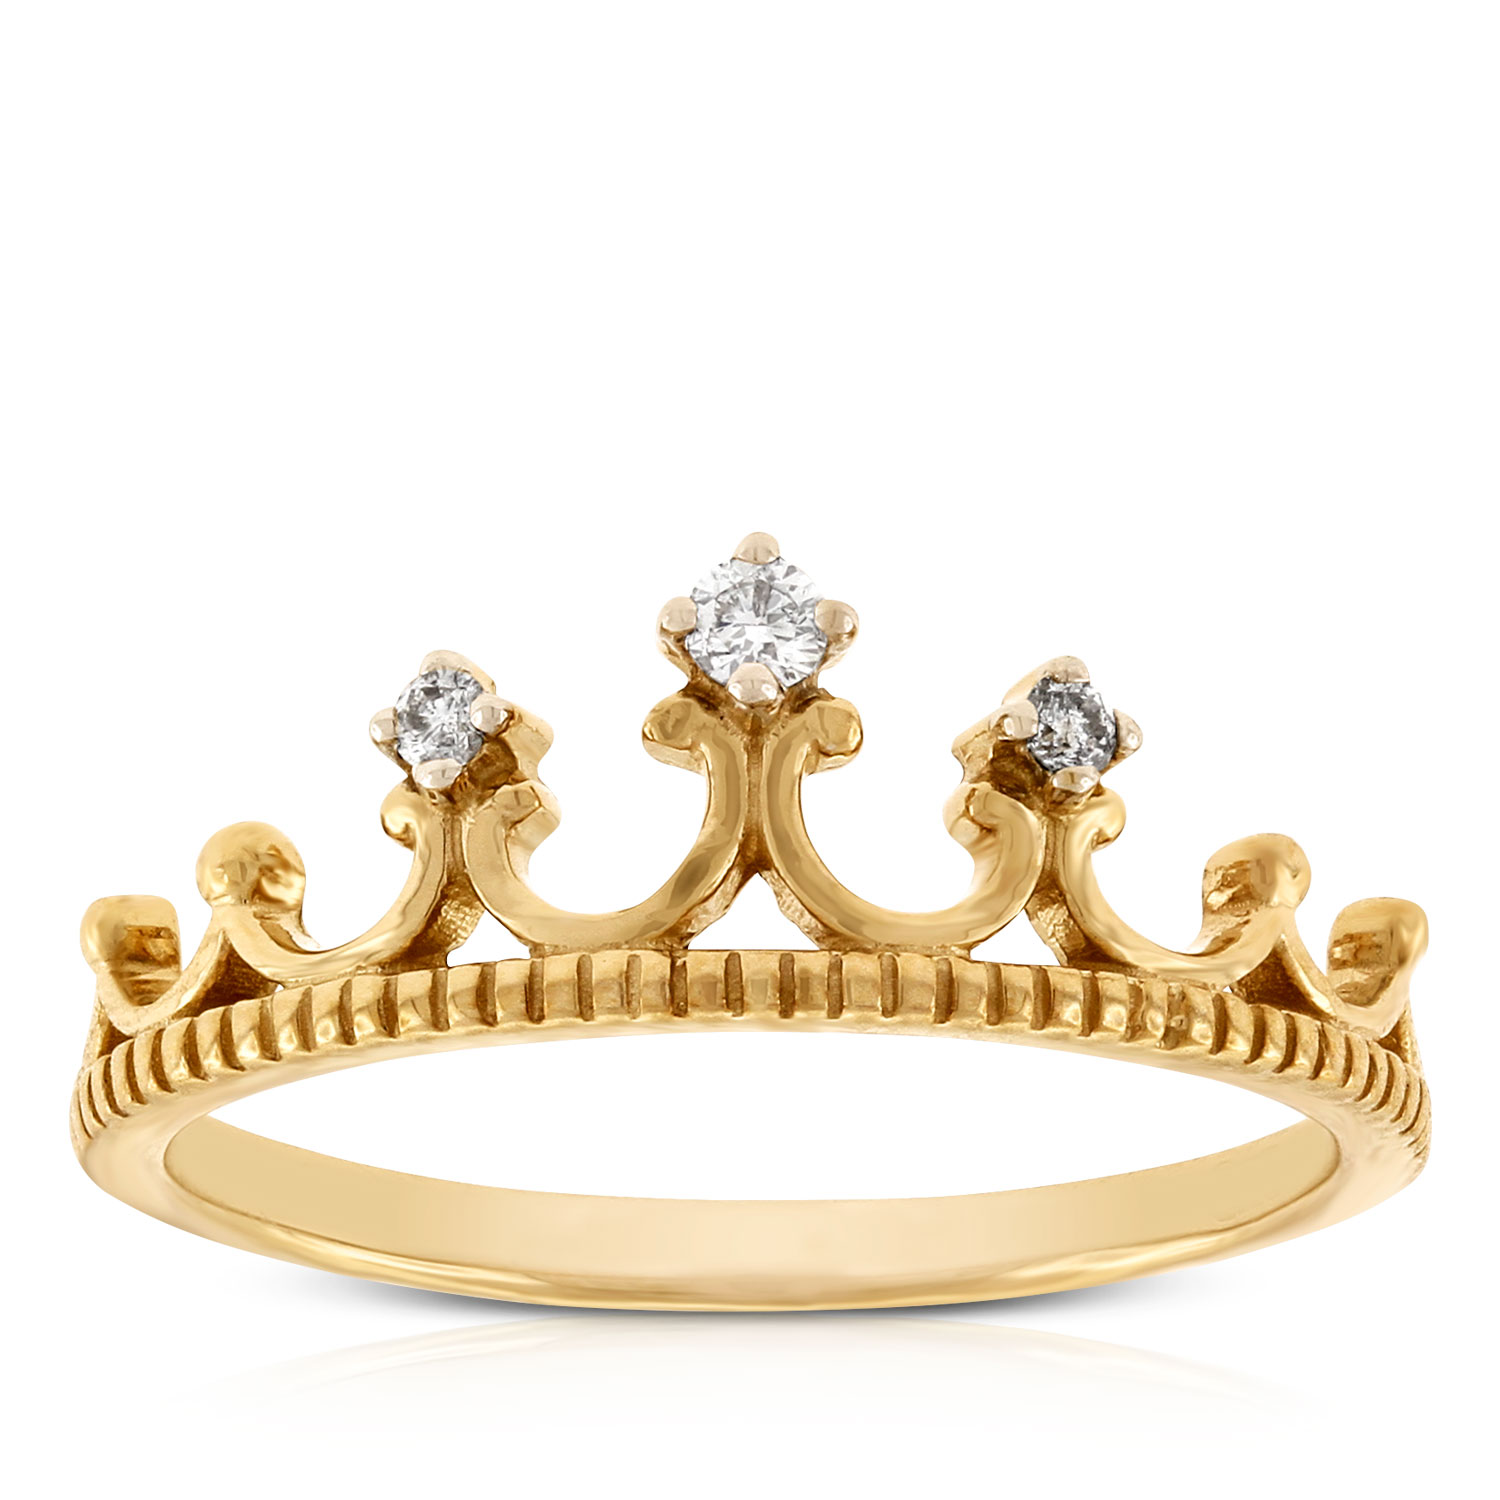 Three Rings And A Crown